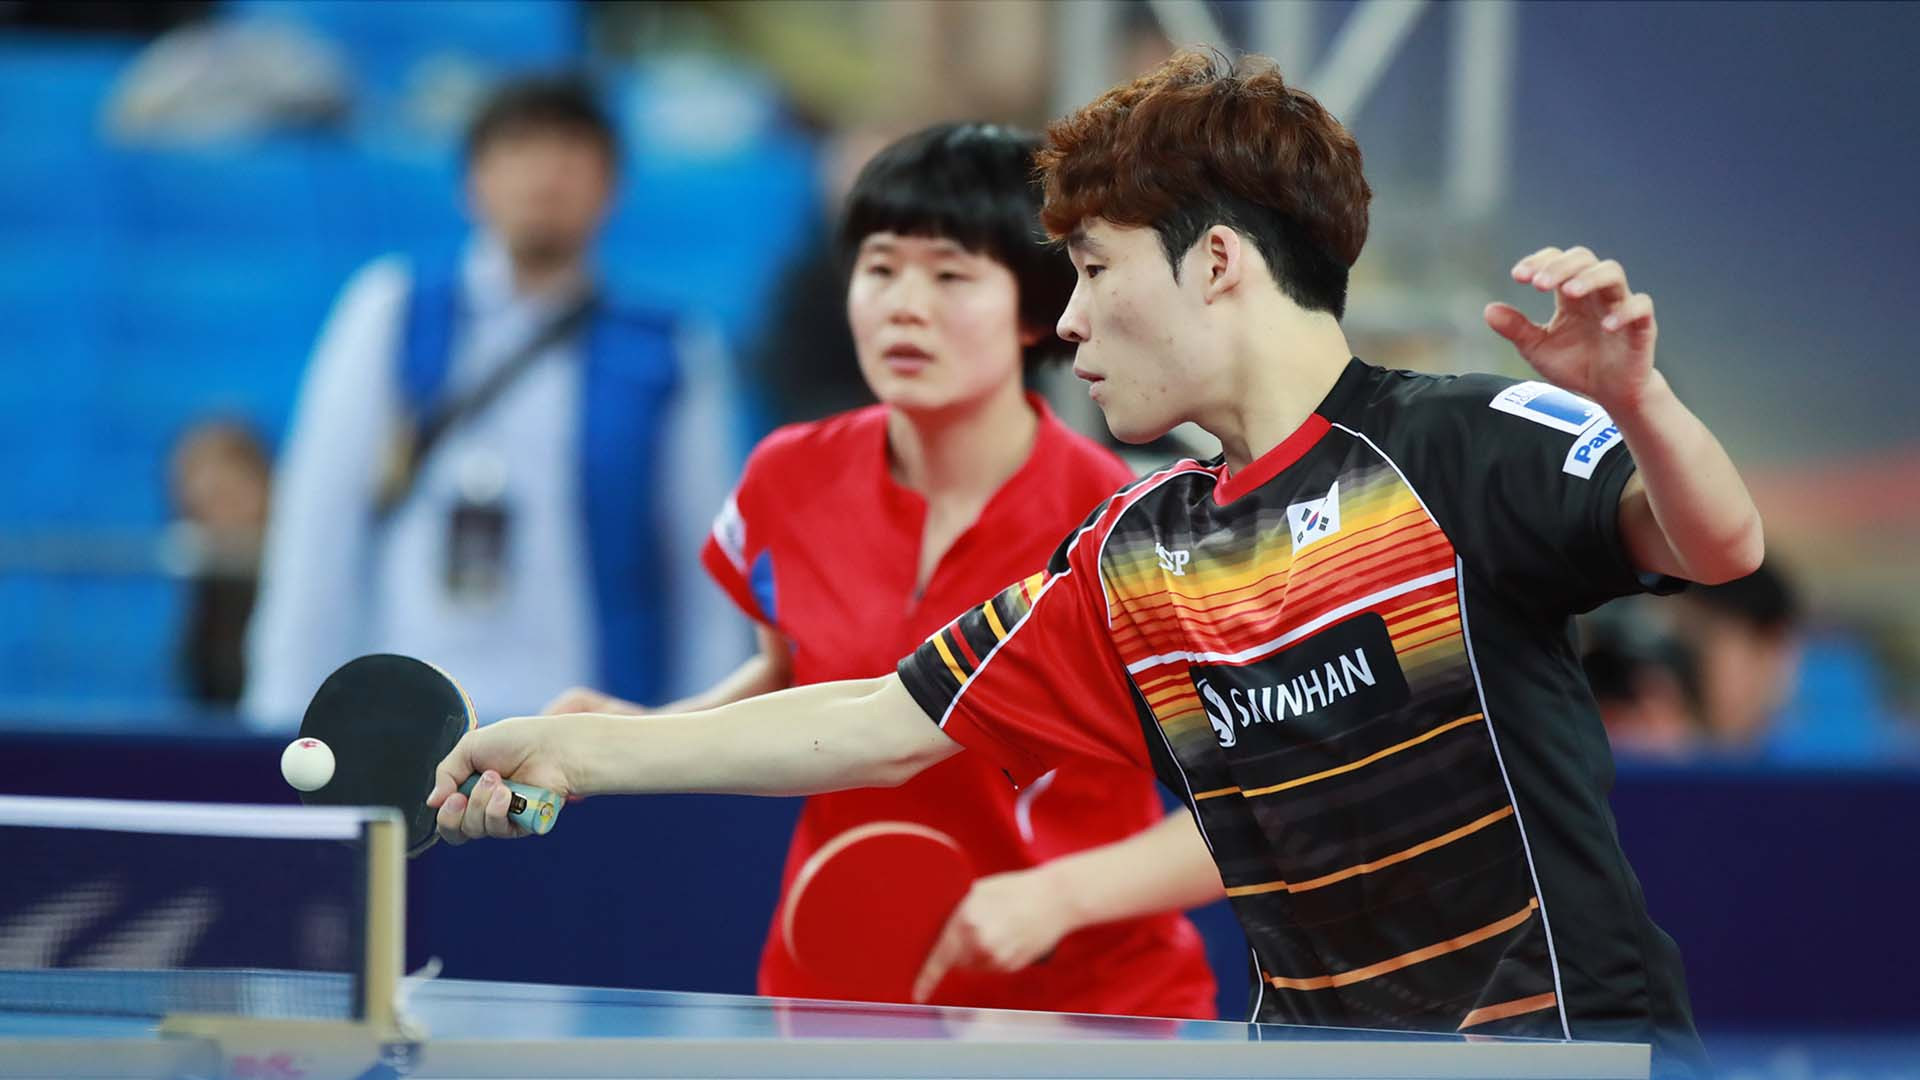 Unified Korean pairing settle for silver in mixed doubles final at ITTF World Tour Grand Finals